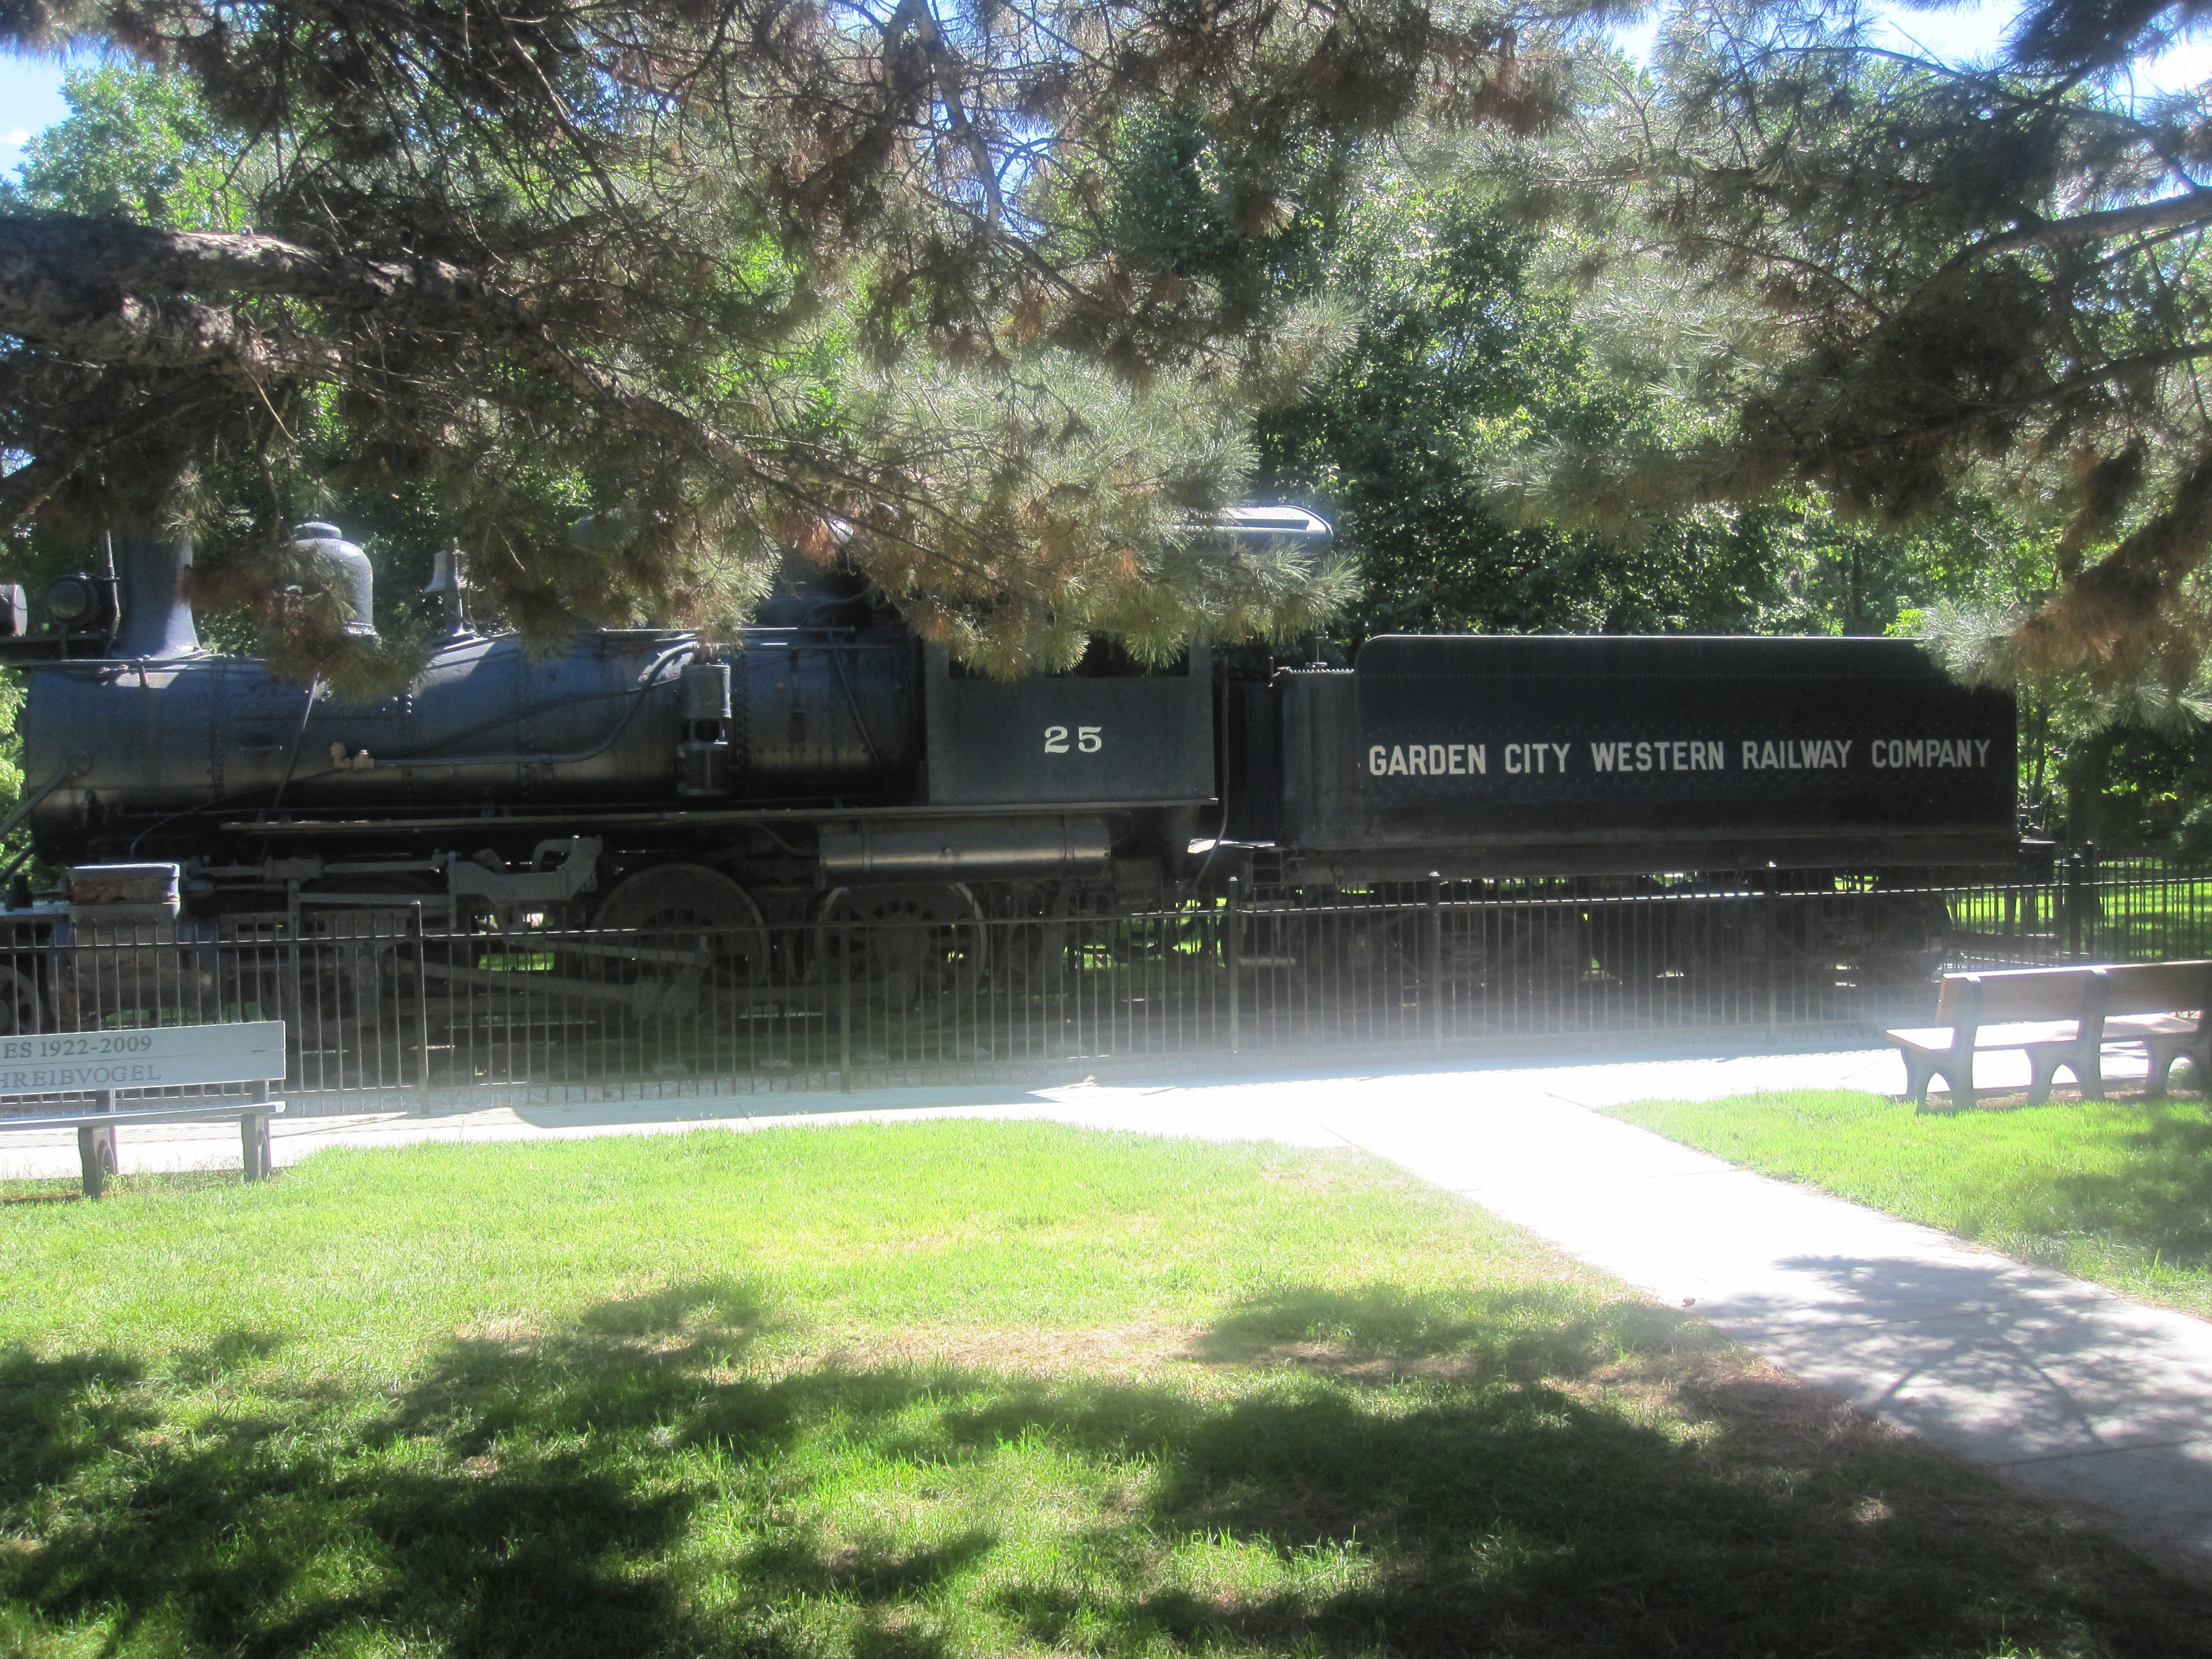 File:Garden City, KS, Western Railway Co. Train IMG 5912.JPG